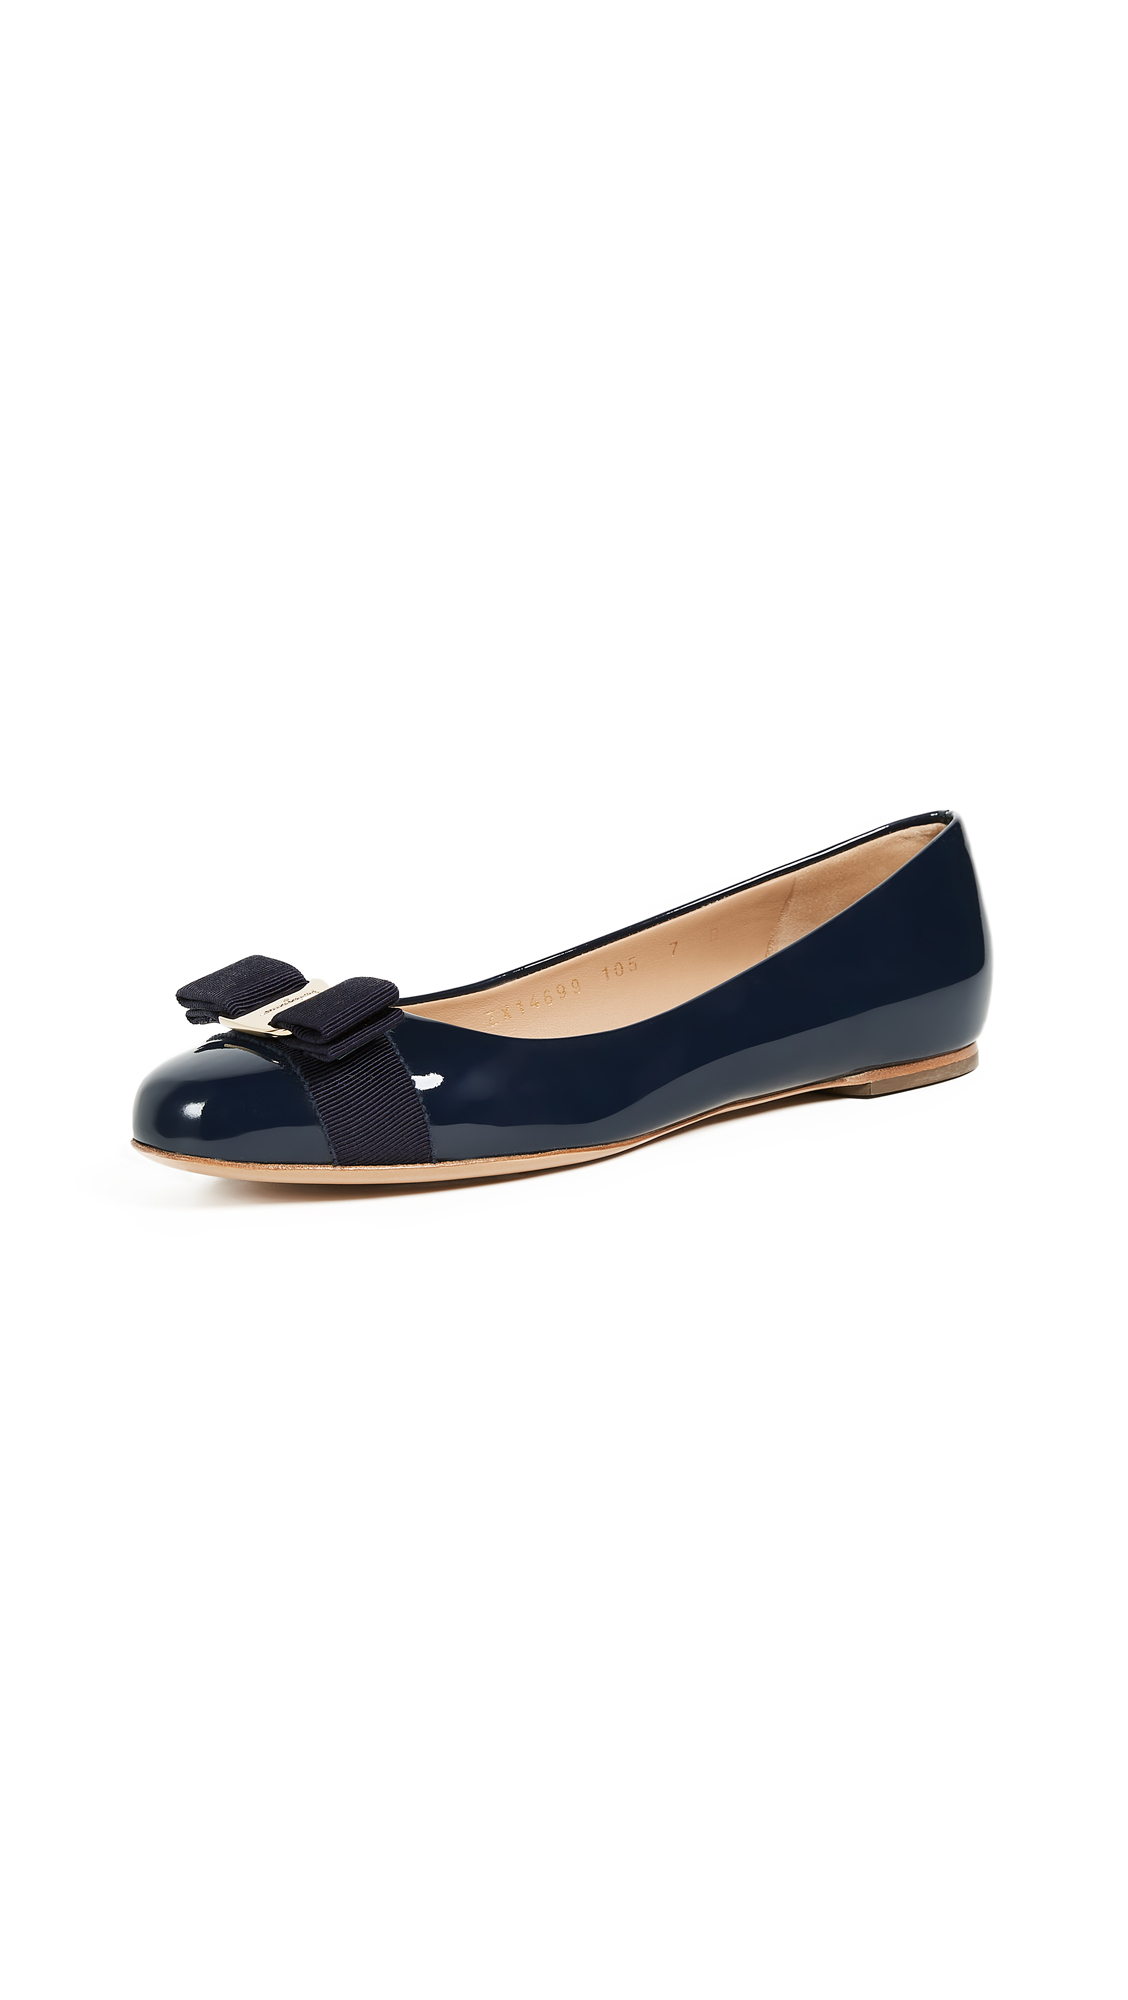 Salvatore Ferragamo Varina Flats - Oxford Blue